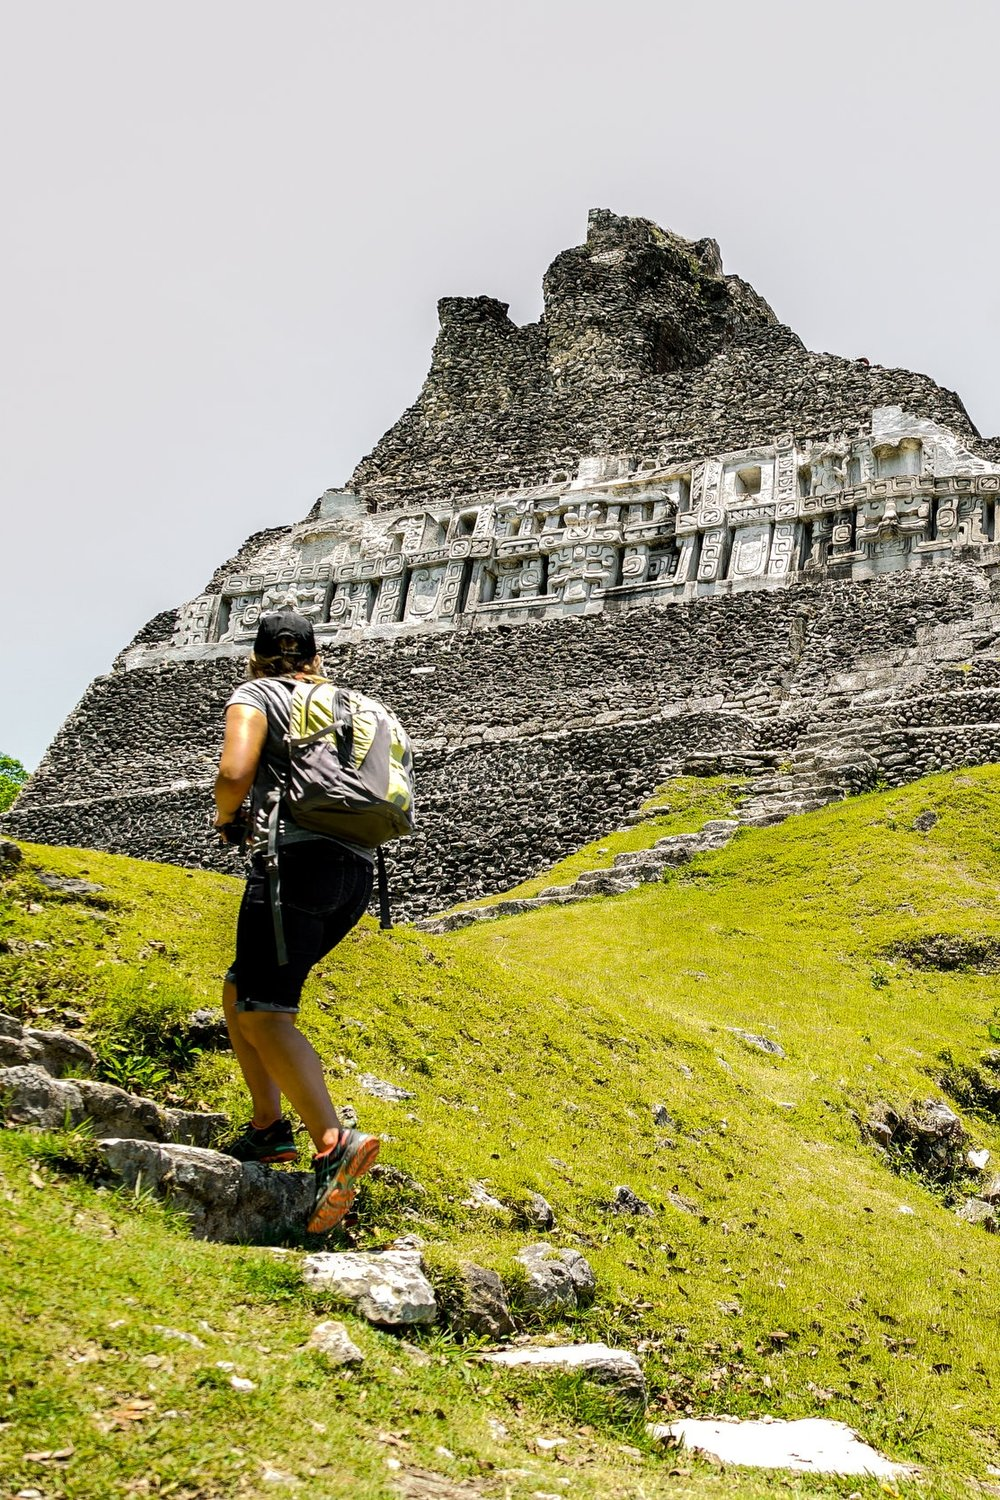 Ancient Maya Sites - Experience the ancient culture of Belize by visiting one of many Maya sites in the country. Our expert guides will take you to the most popular spots, at the least popular times, allowing for an incredible personal experience.